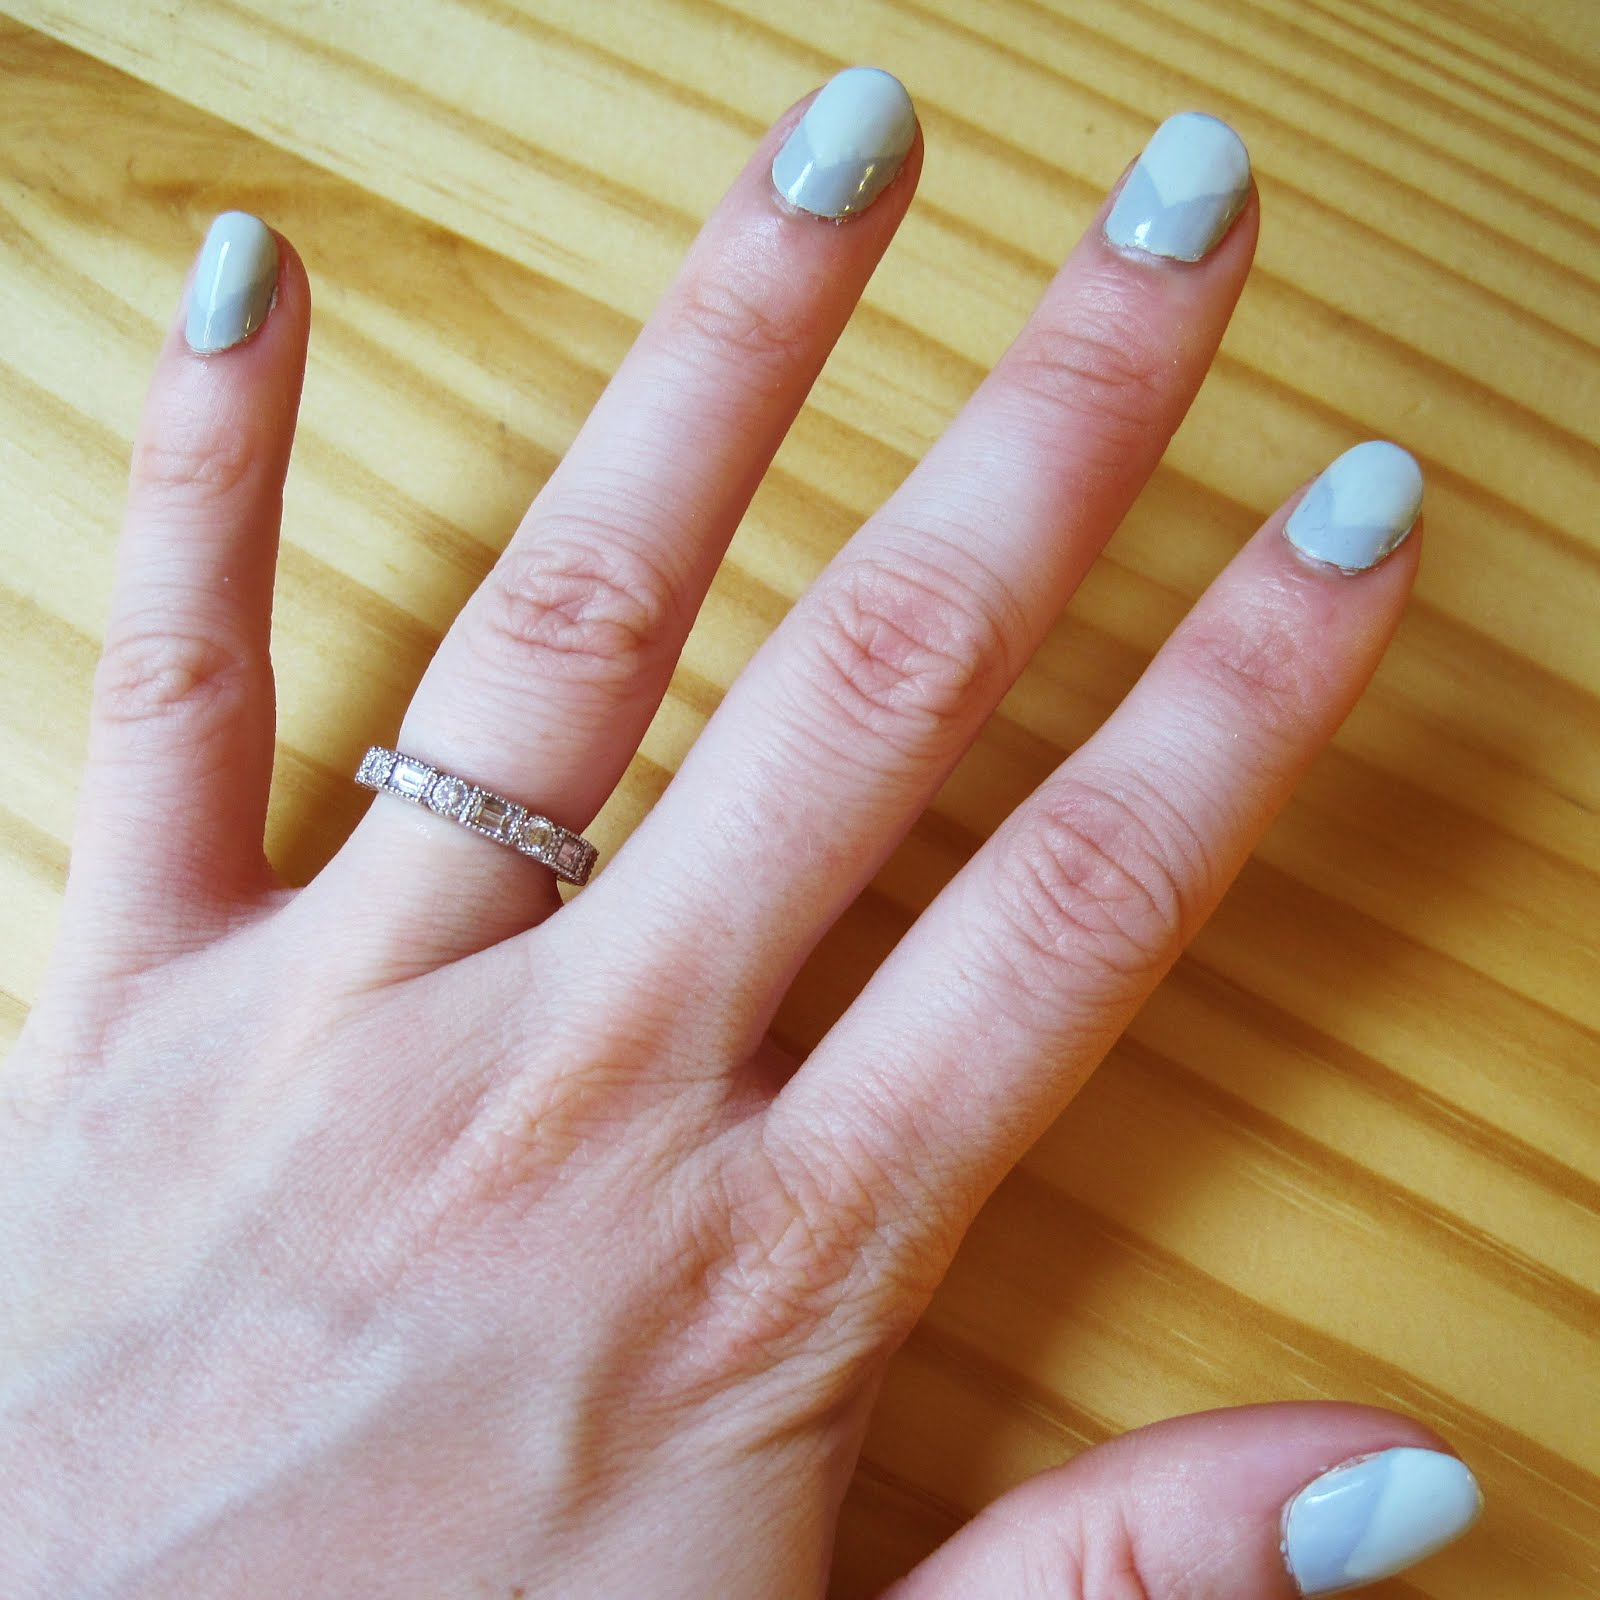 Blogging for YA: Wrap Up: Fancy Nails Edition